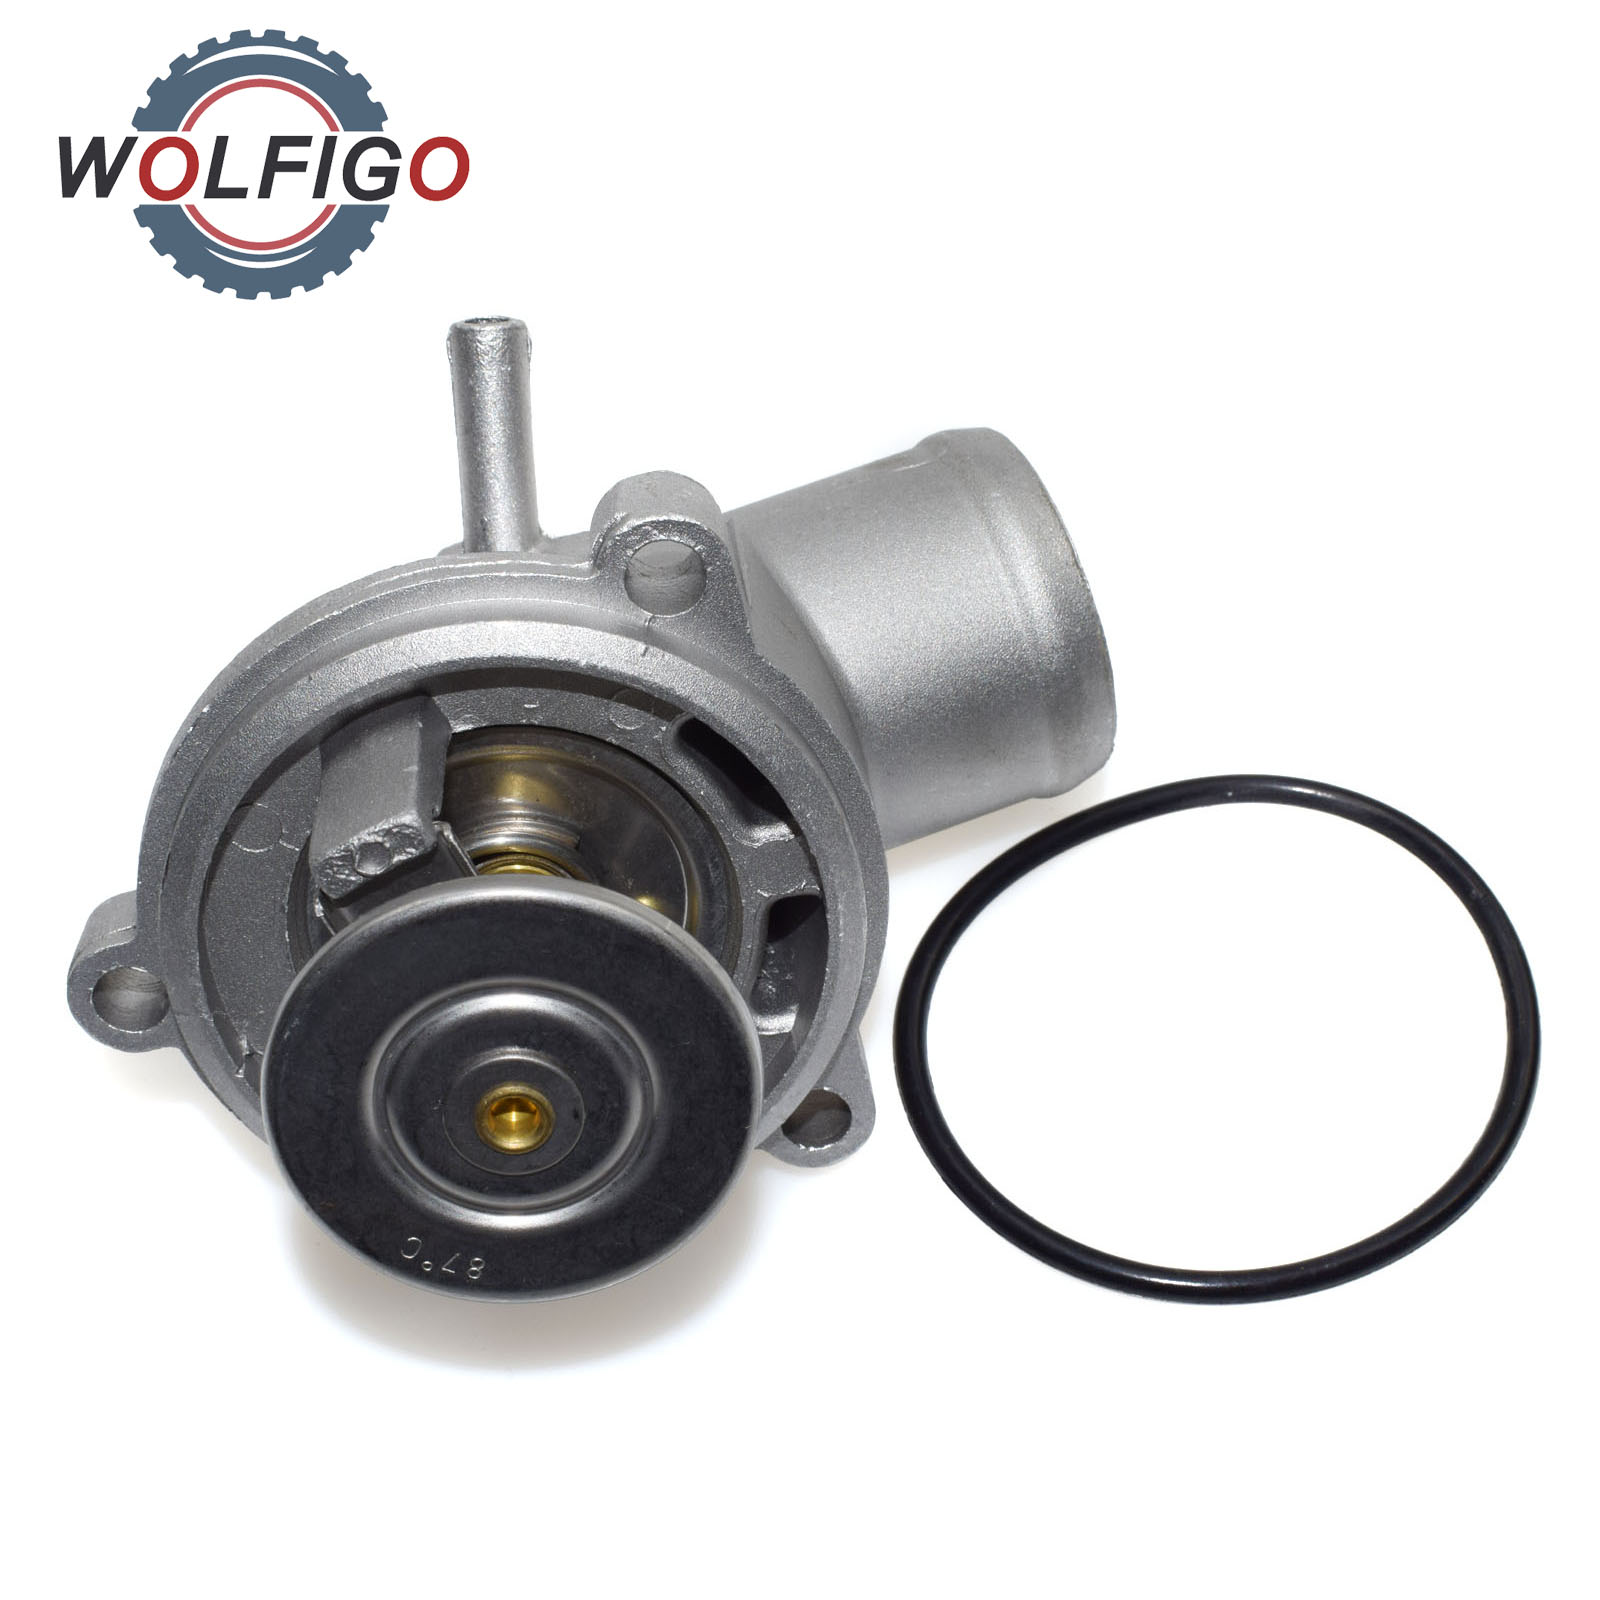 WOLFIGO Engine Coolant Thermostat For Mercedes Benz W202 C208 S124 VITO  DAEWOO SSANGYONG MUSSO REXTON 1112030975 1112030875-in Thermostats & Parts  from ...